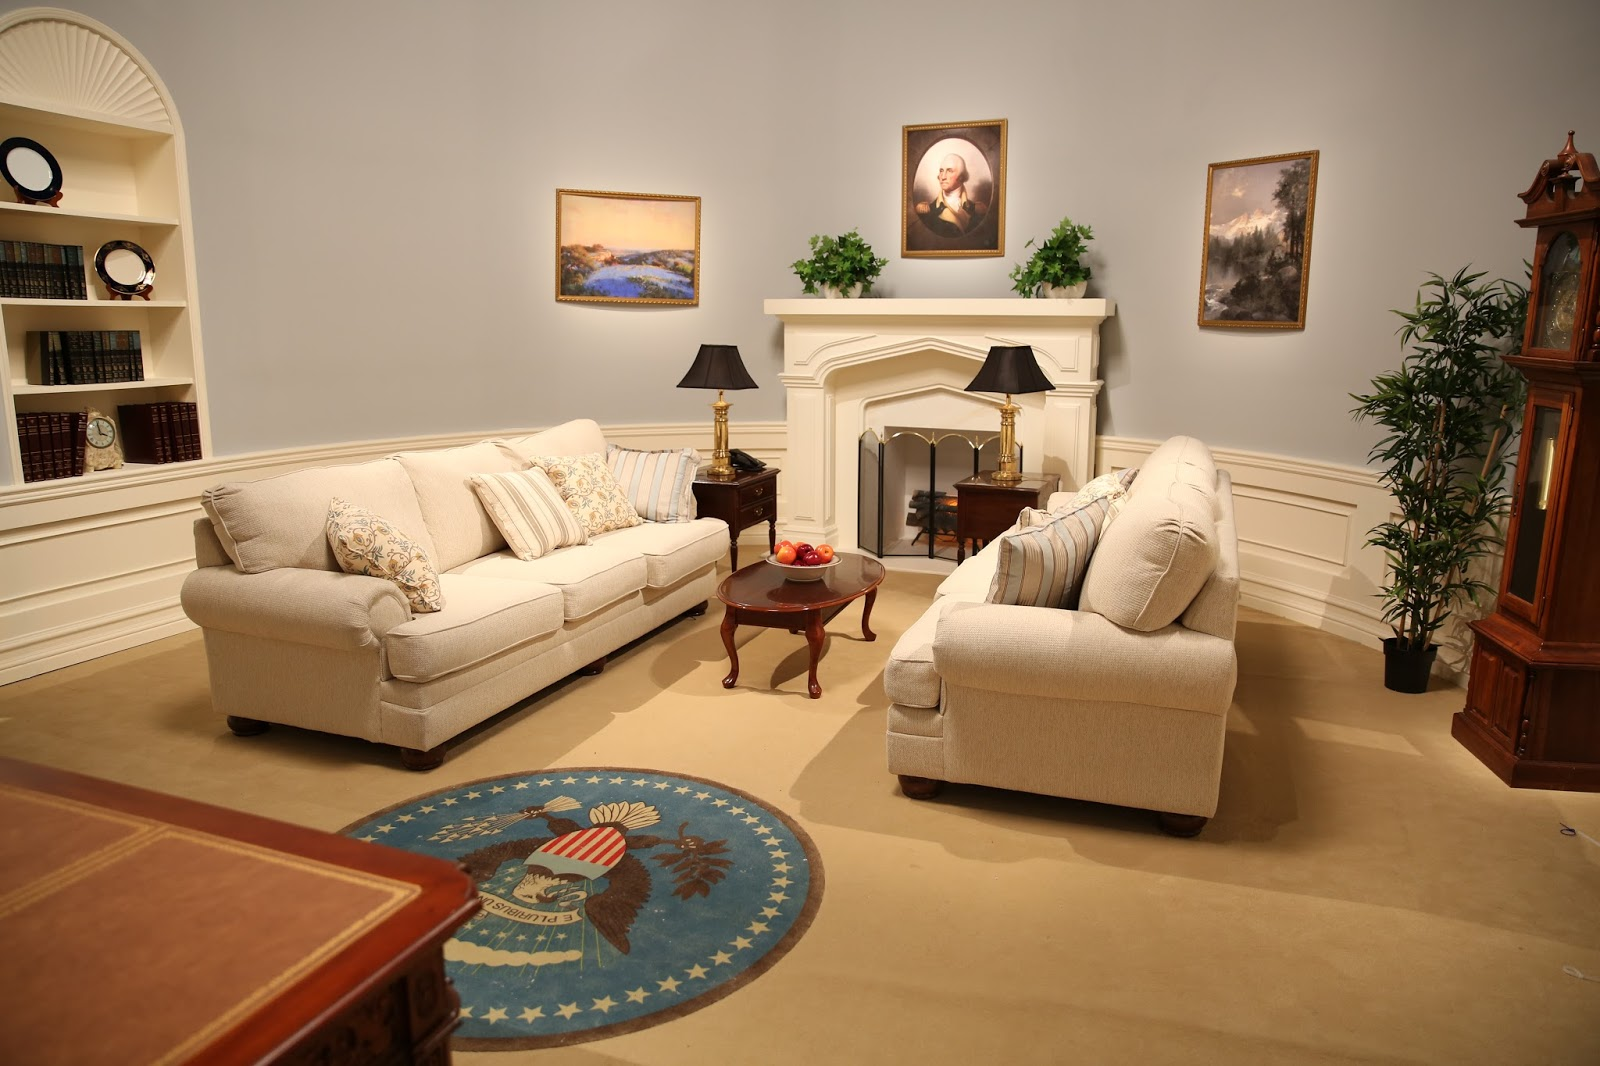 reagan oval office. History Of The Oval Office. Office E Reagan